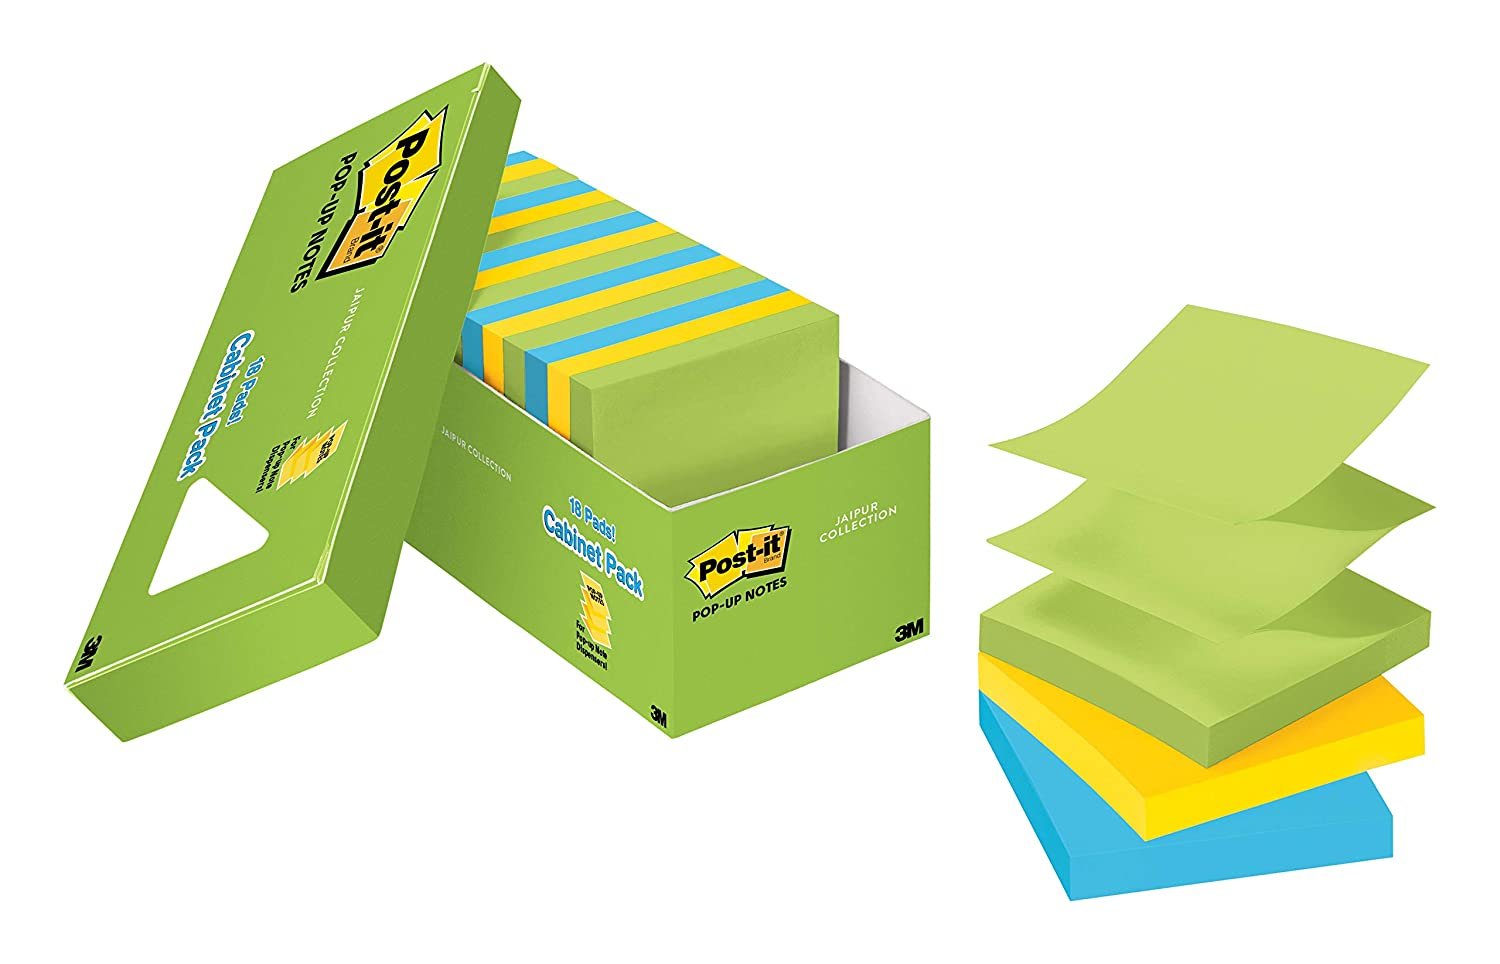 Post-it Pop-up Notes, America's #1 Favorite Sticky Note, 3 in x 3 in, Jaipur Collection, 18 Pads/Cabinet Pack (R330-18AUCP)